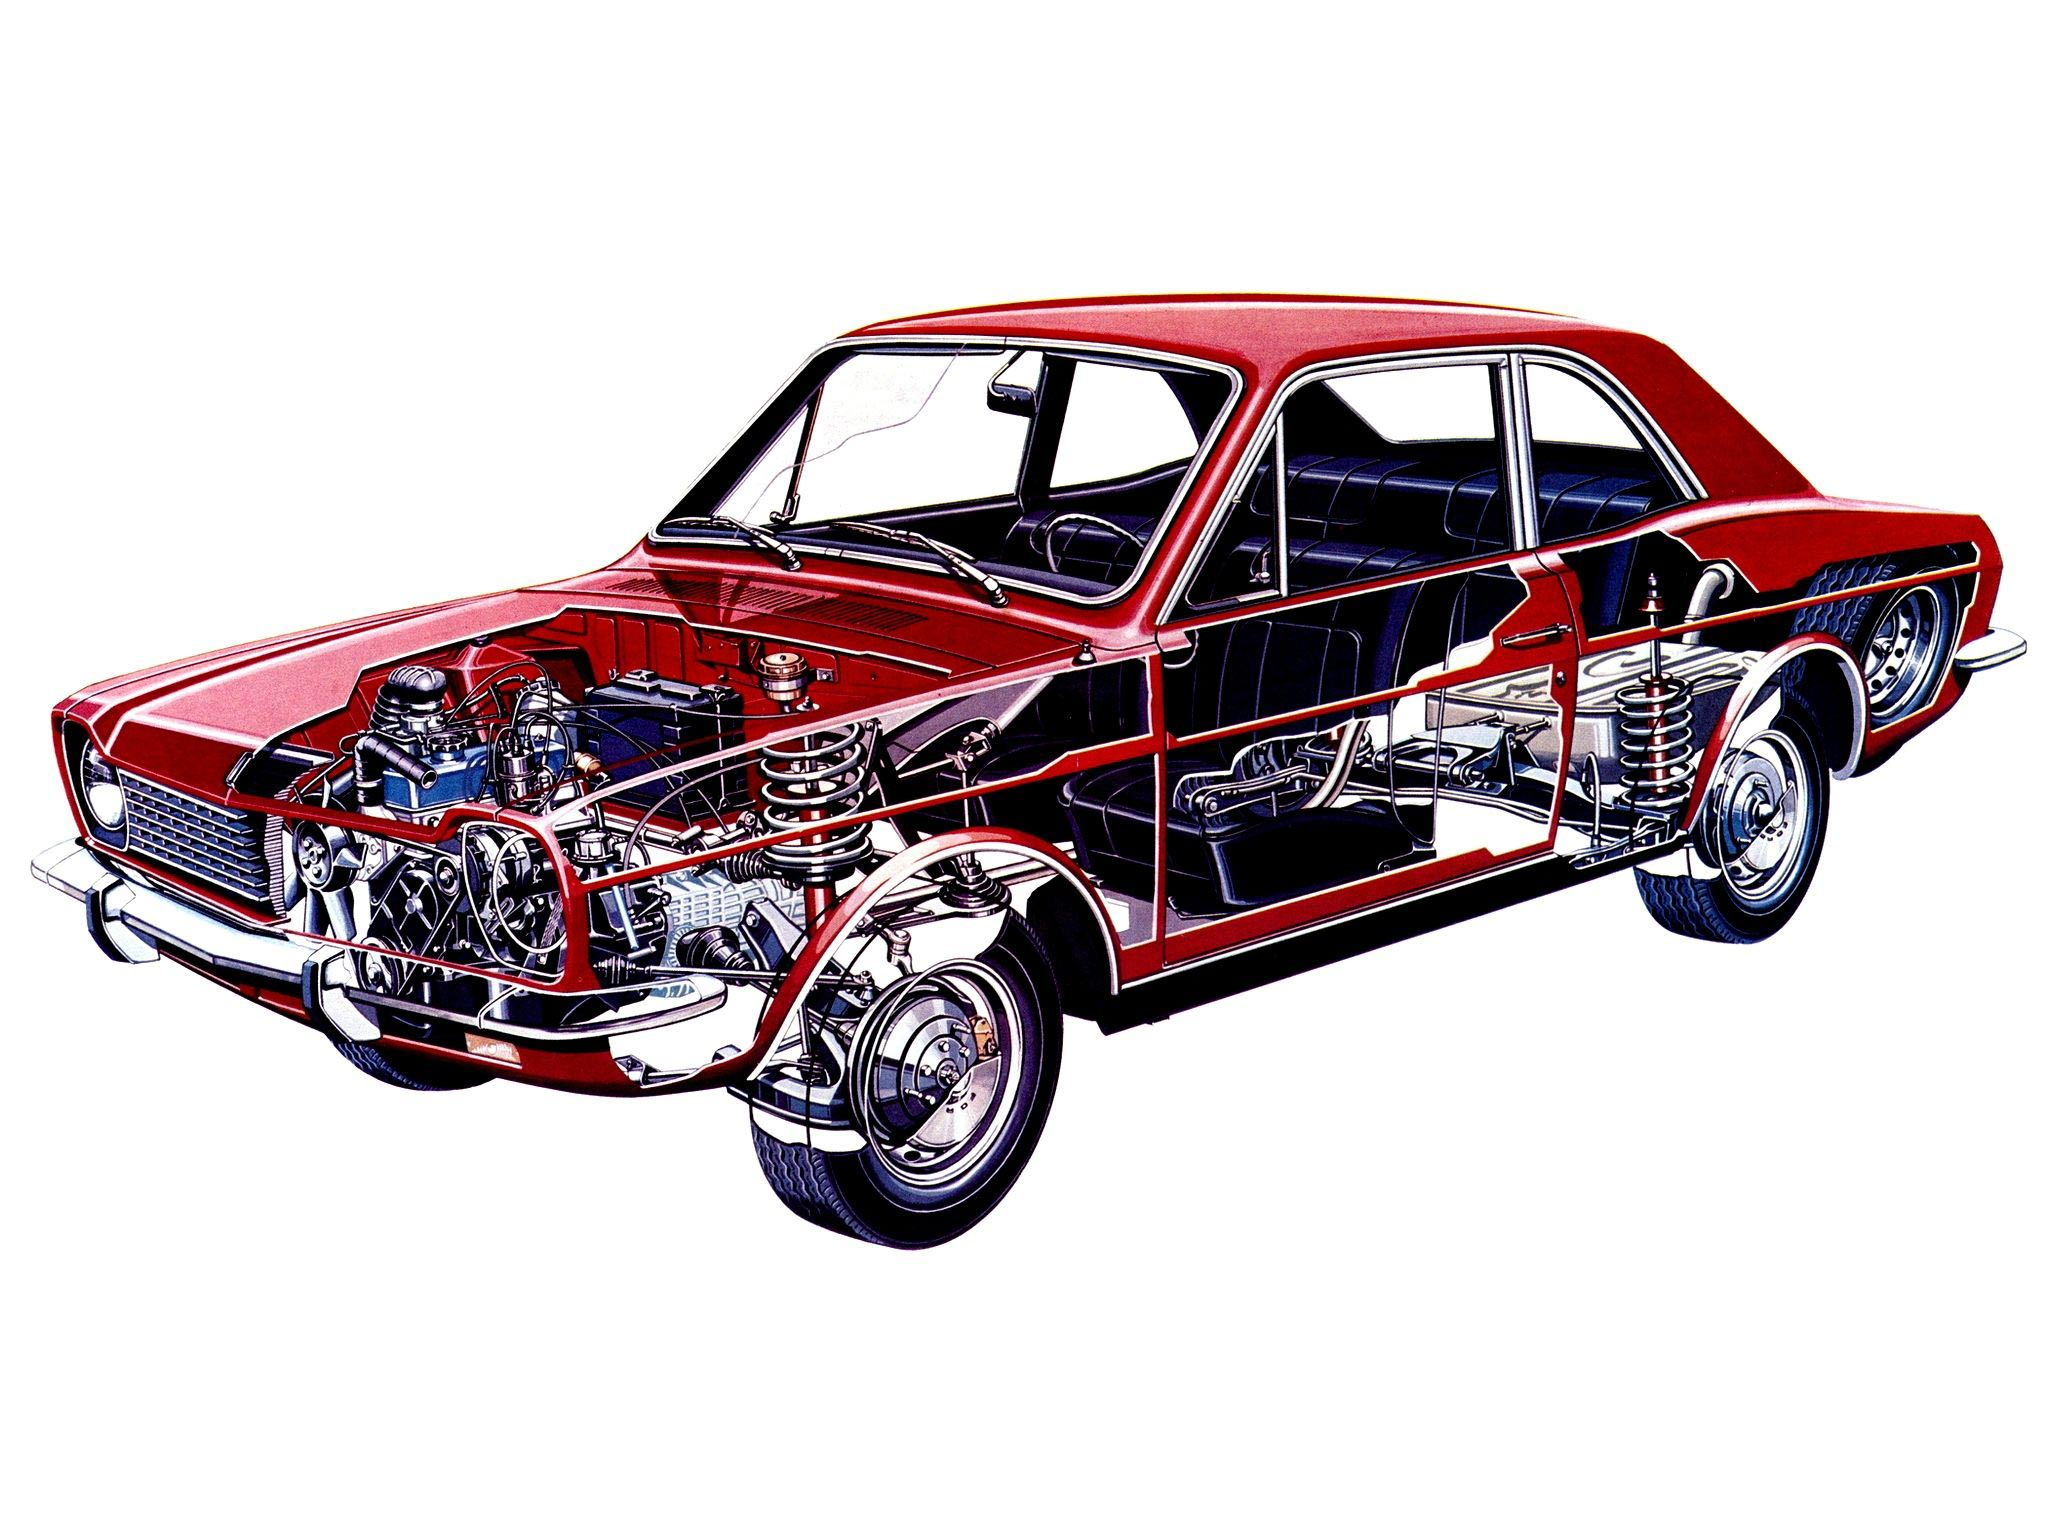 Ford Corcel cutaway drawing